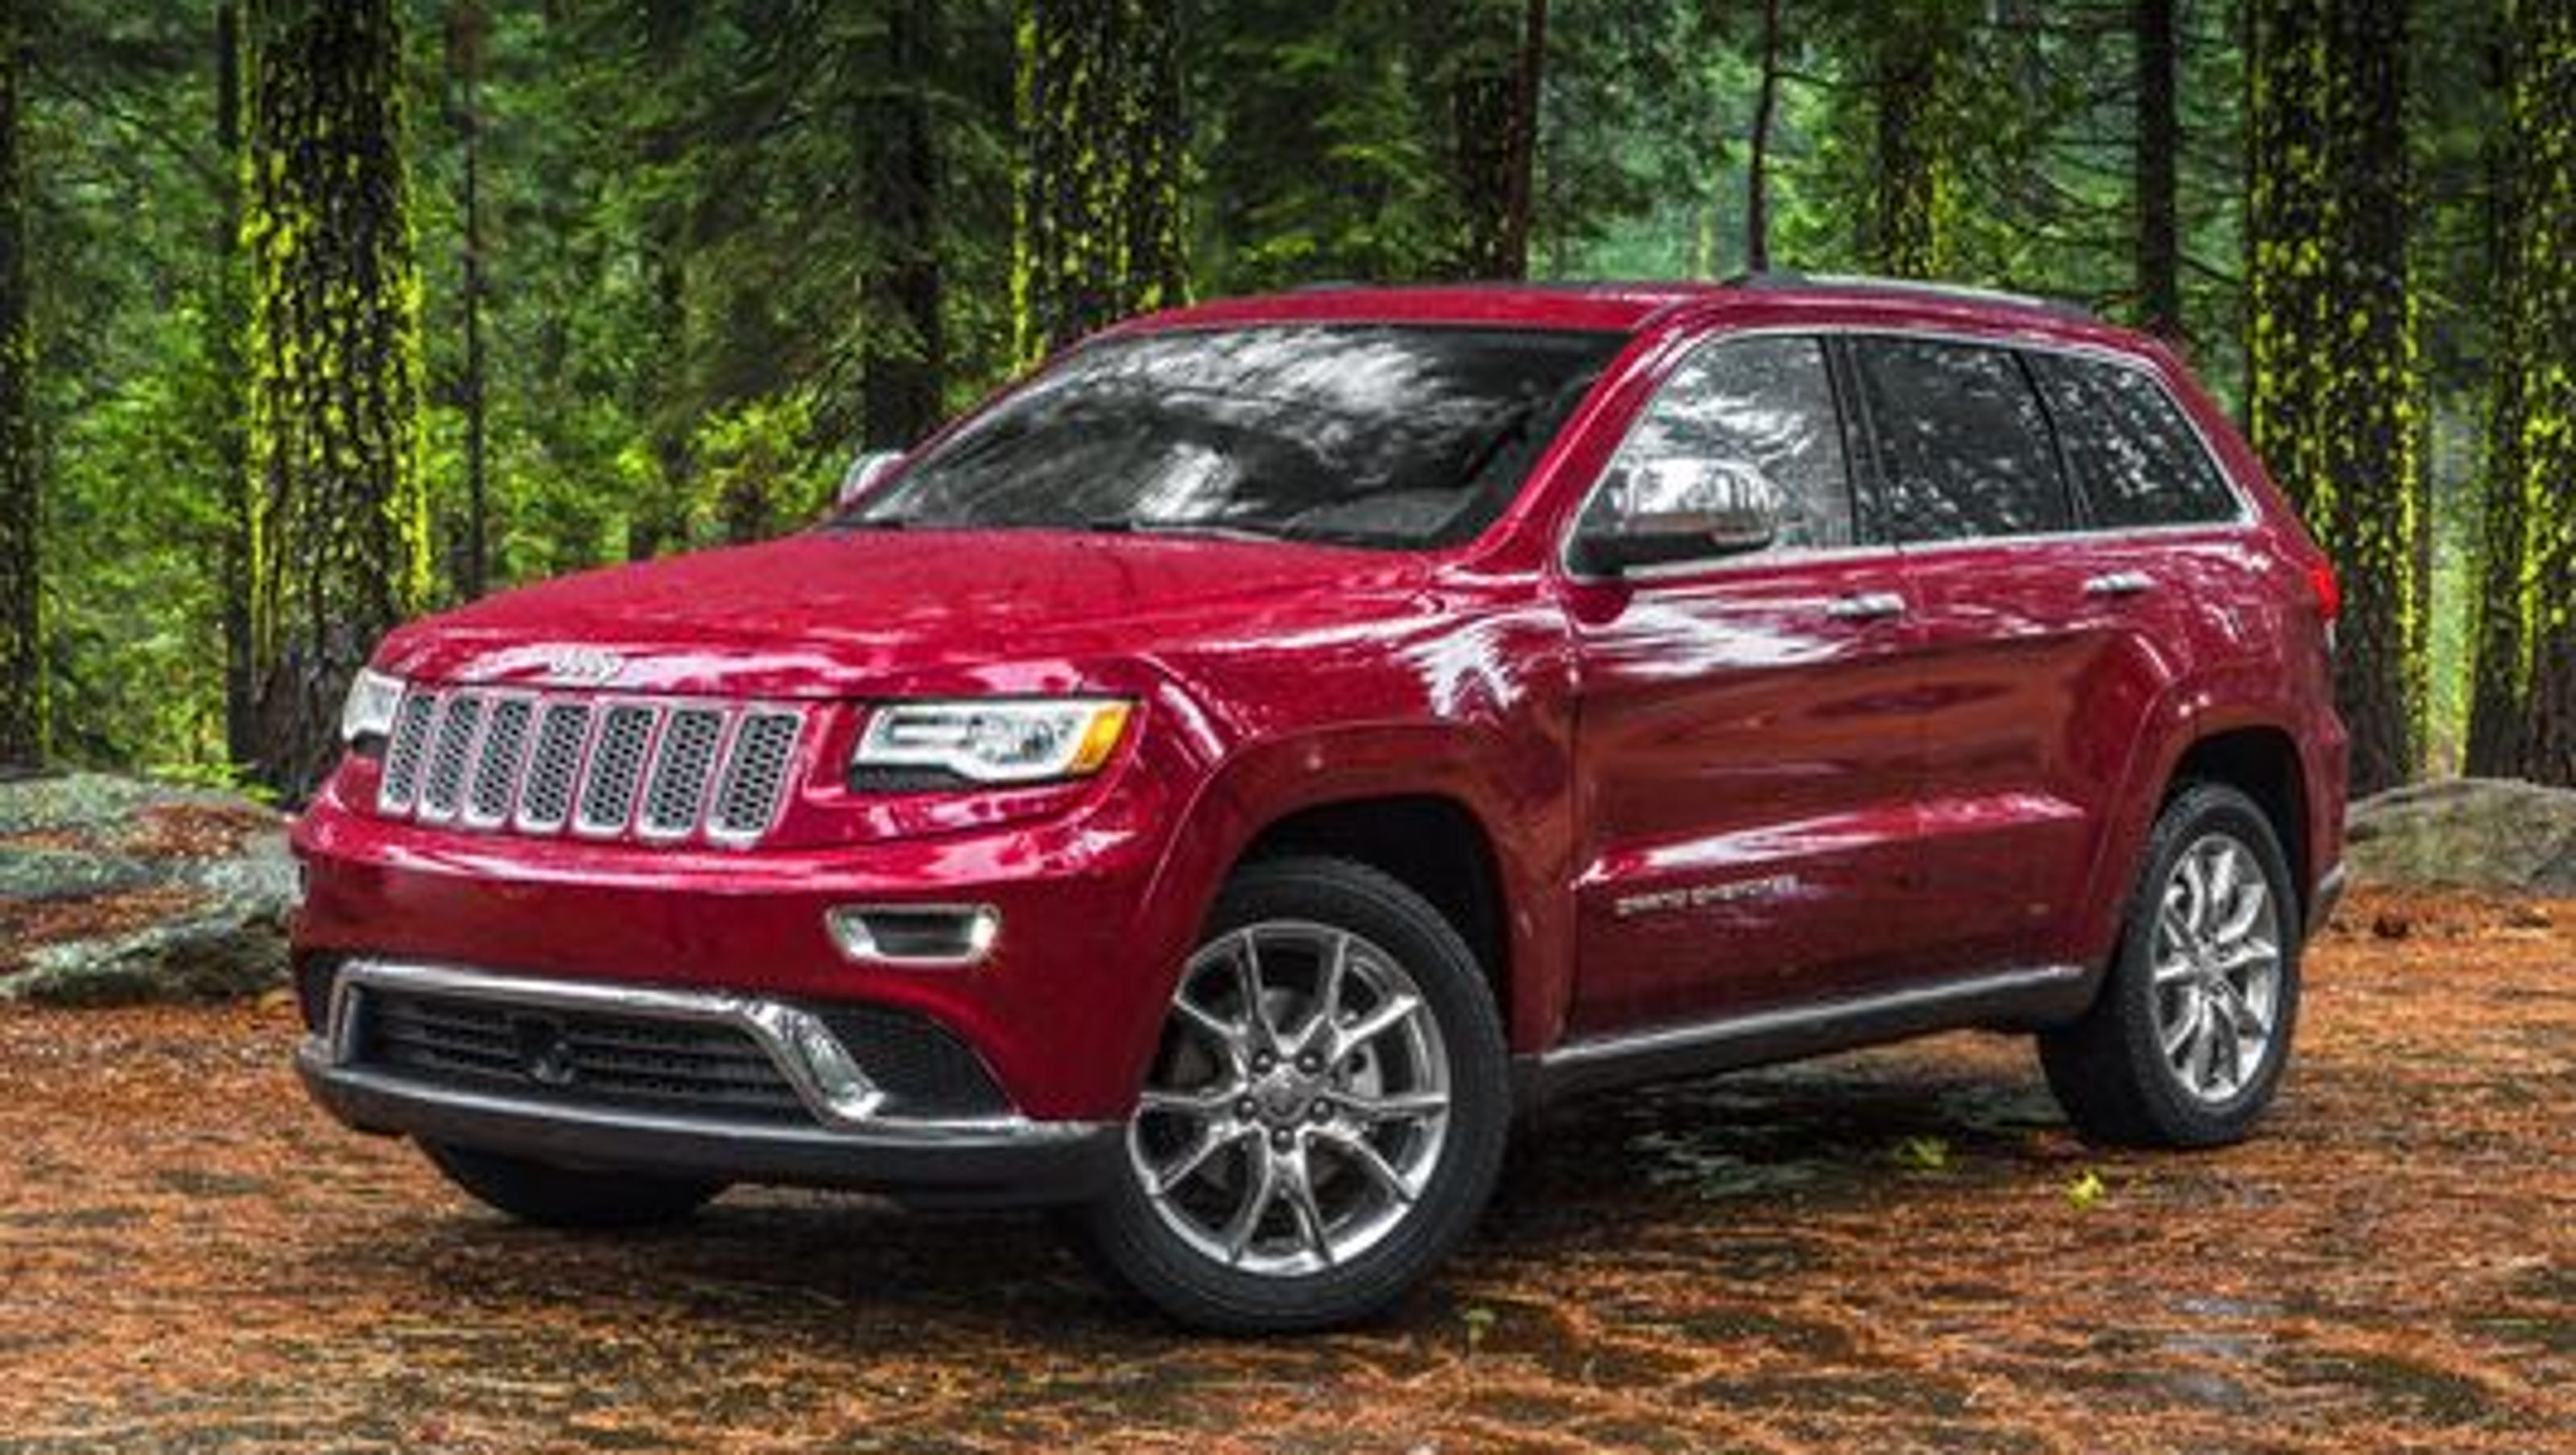 Redesigned Jeep Grand Cherokee To Be Delayed A Year